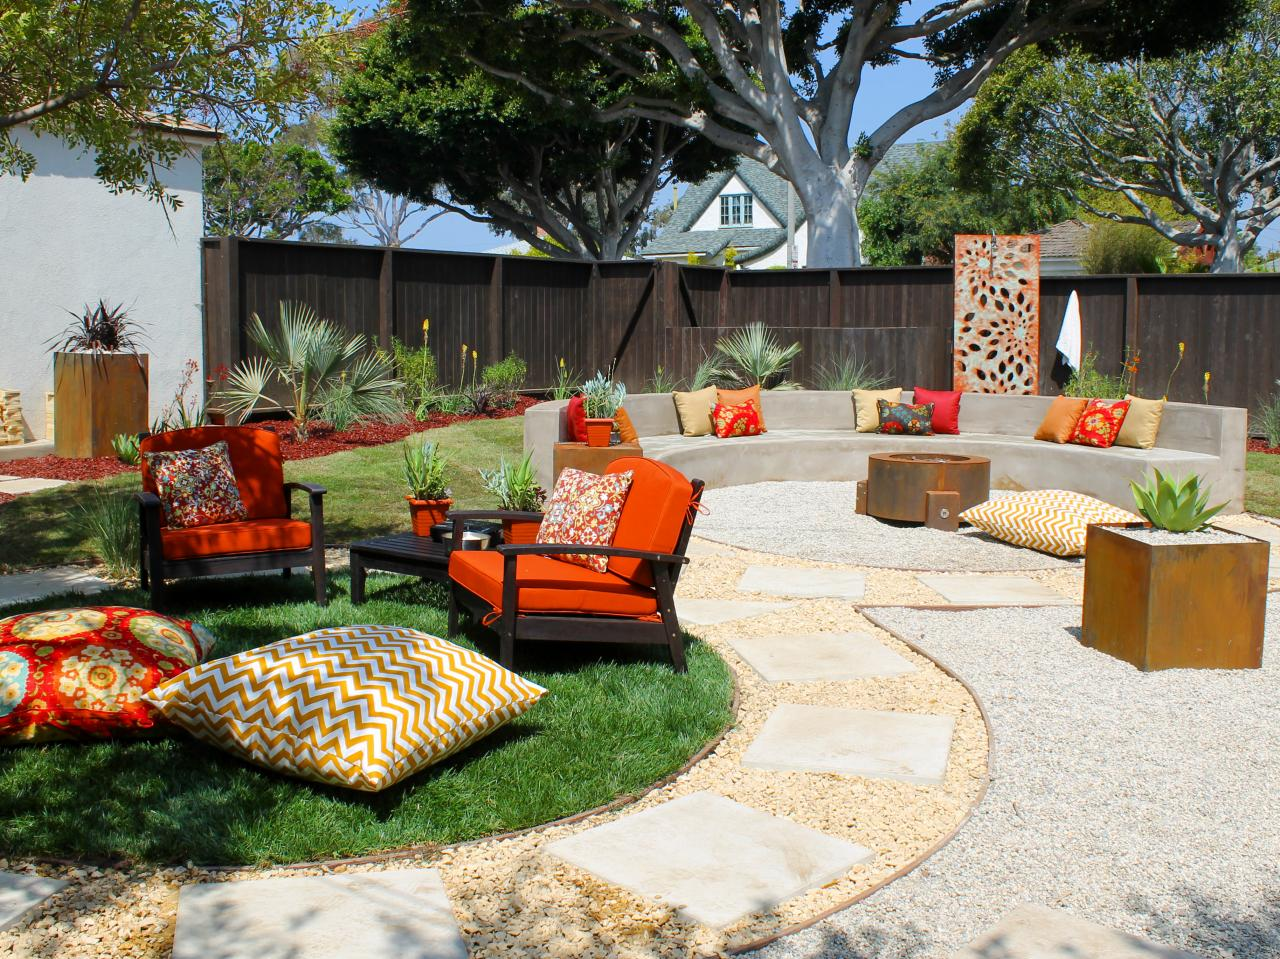 Diy backyard fire pit home made ideas to build outdoor - Small backyard fire pit ideas ...